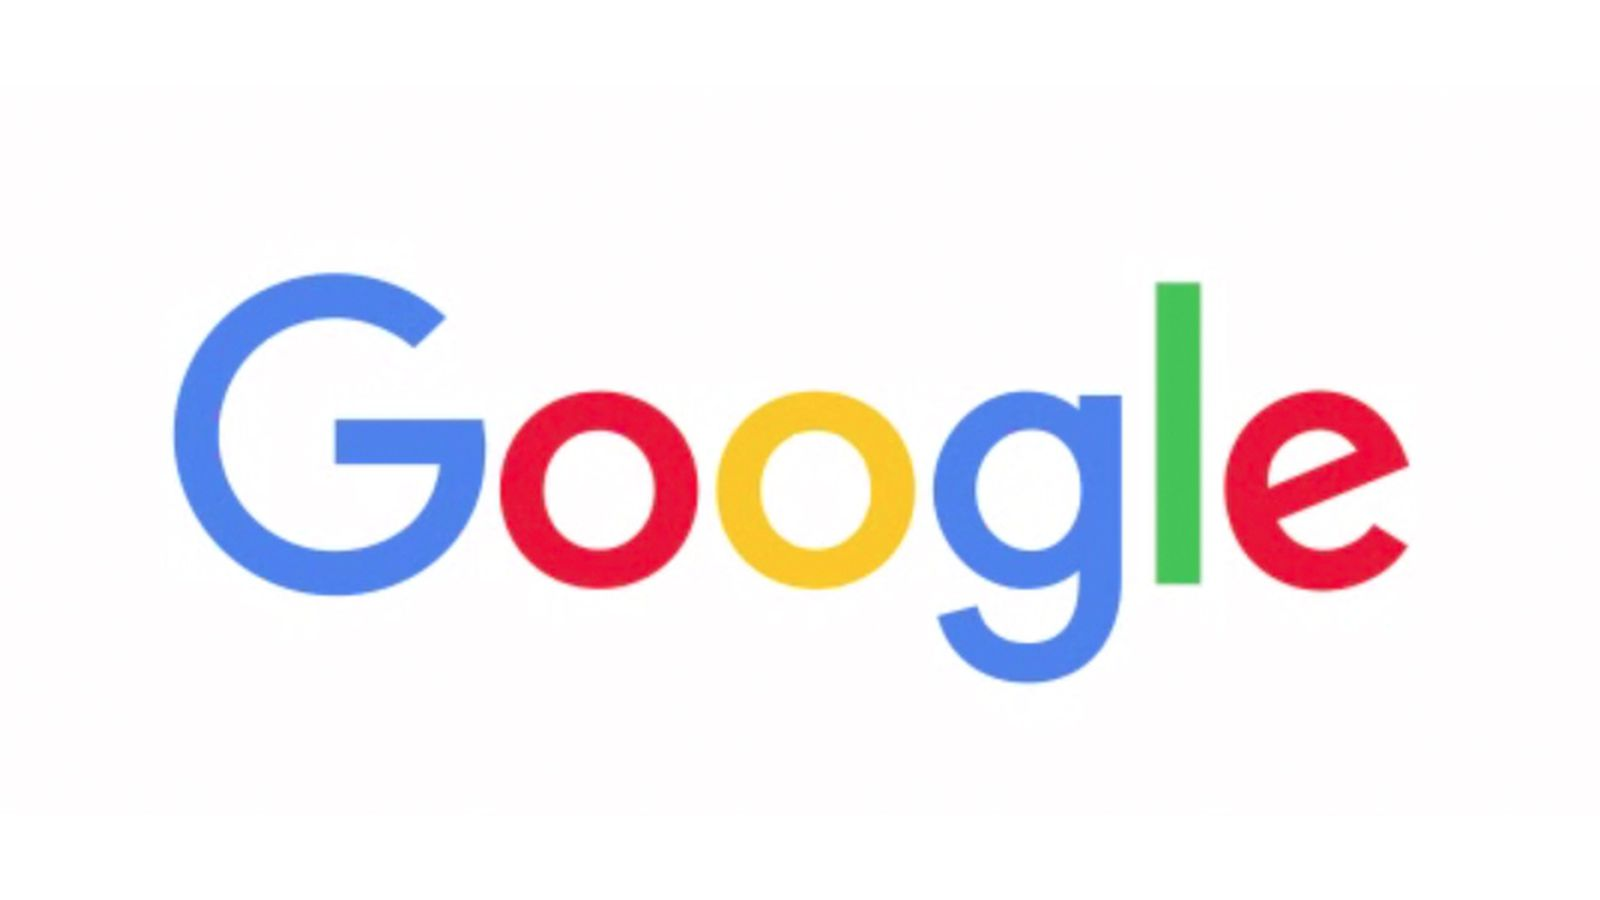 Google's New Logo Inspires Love, Passion, And Fear